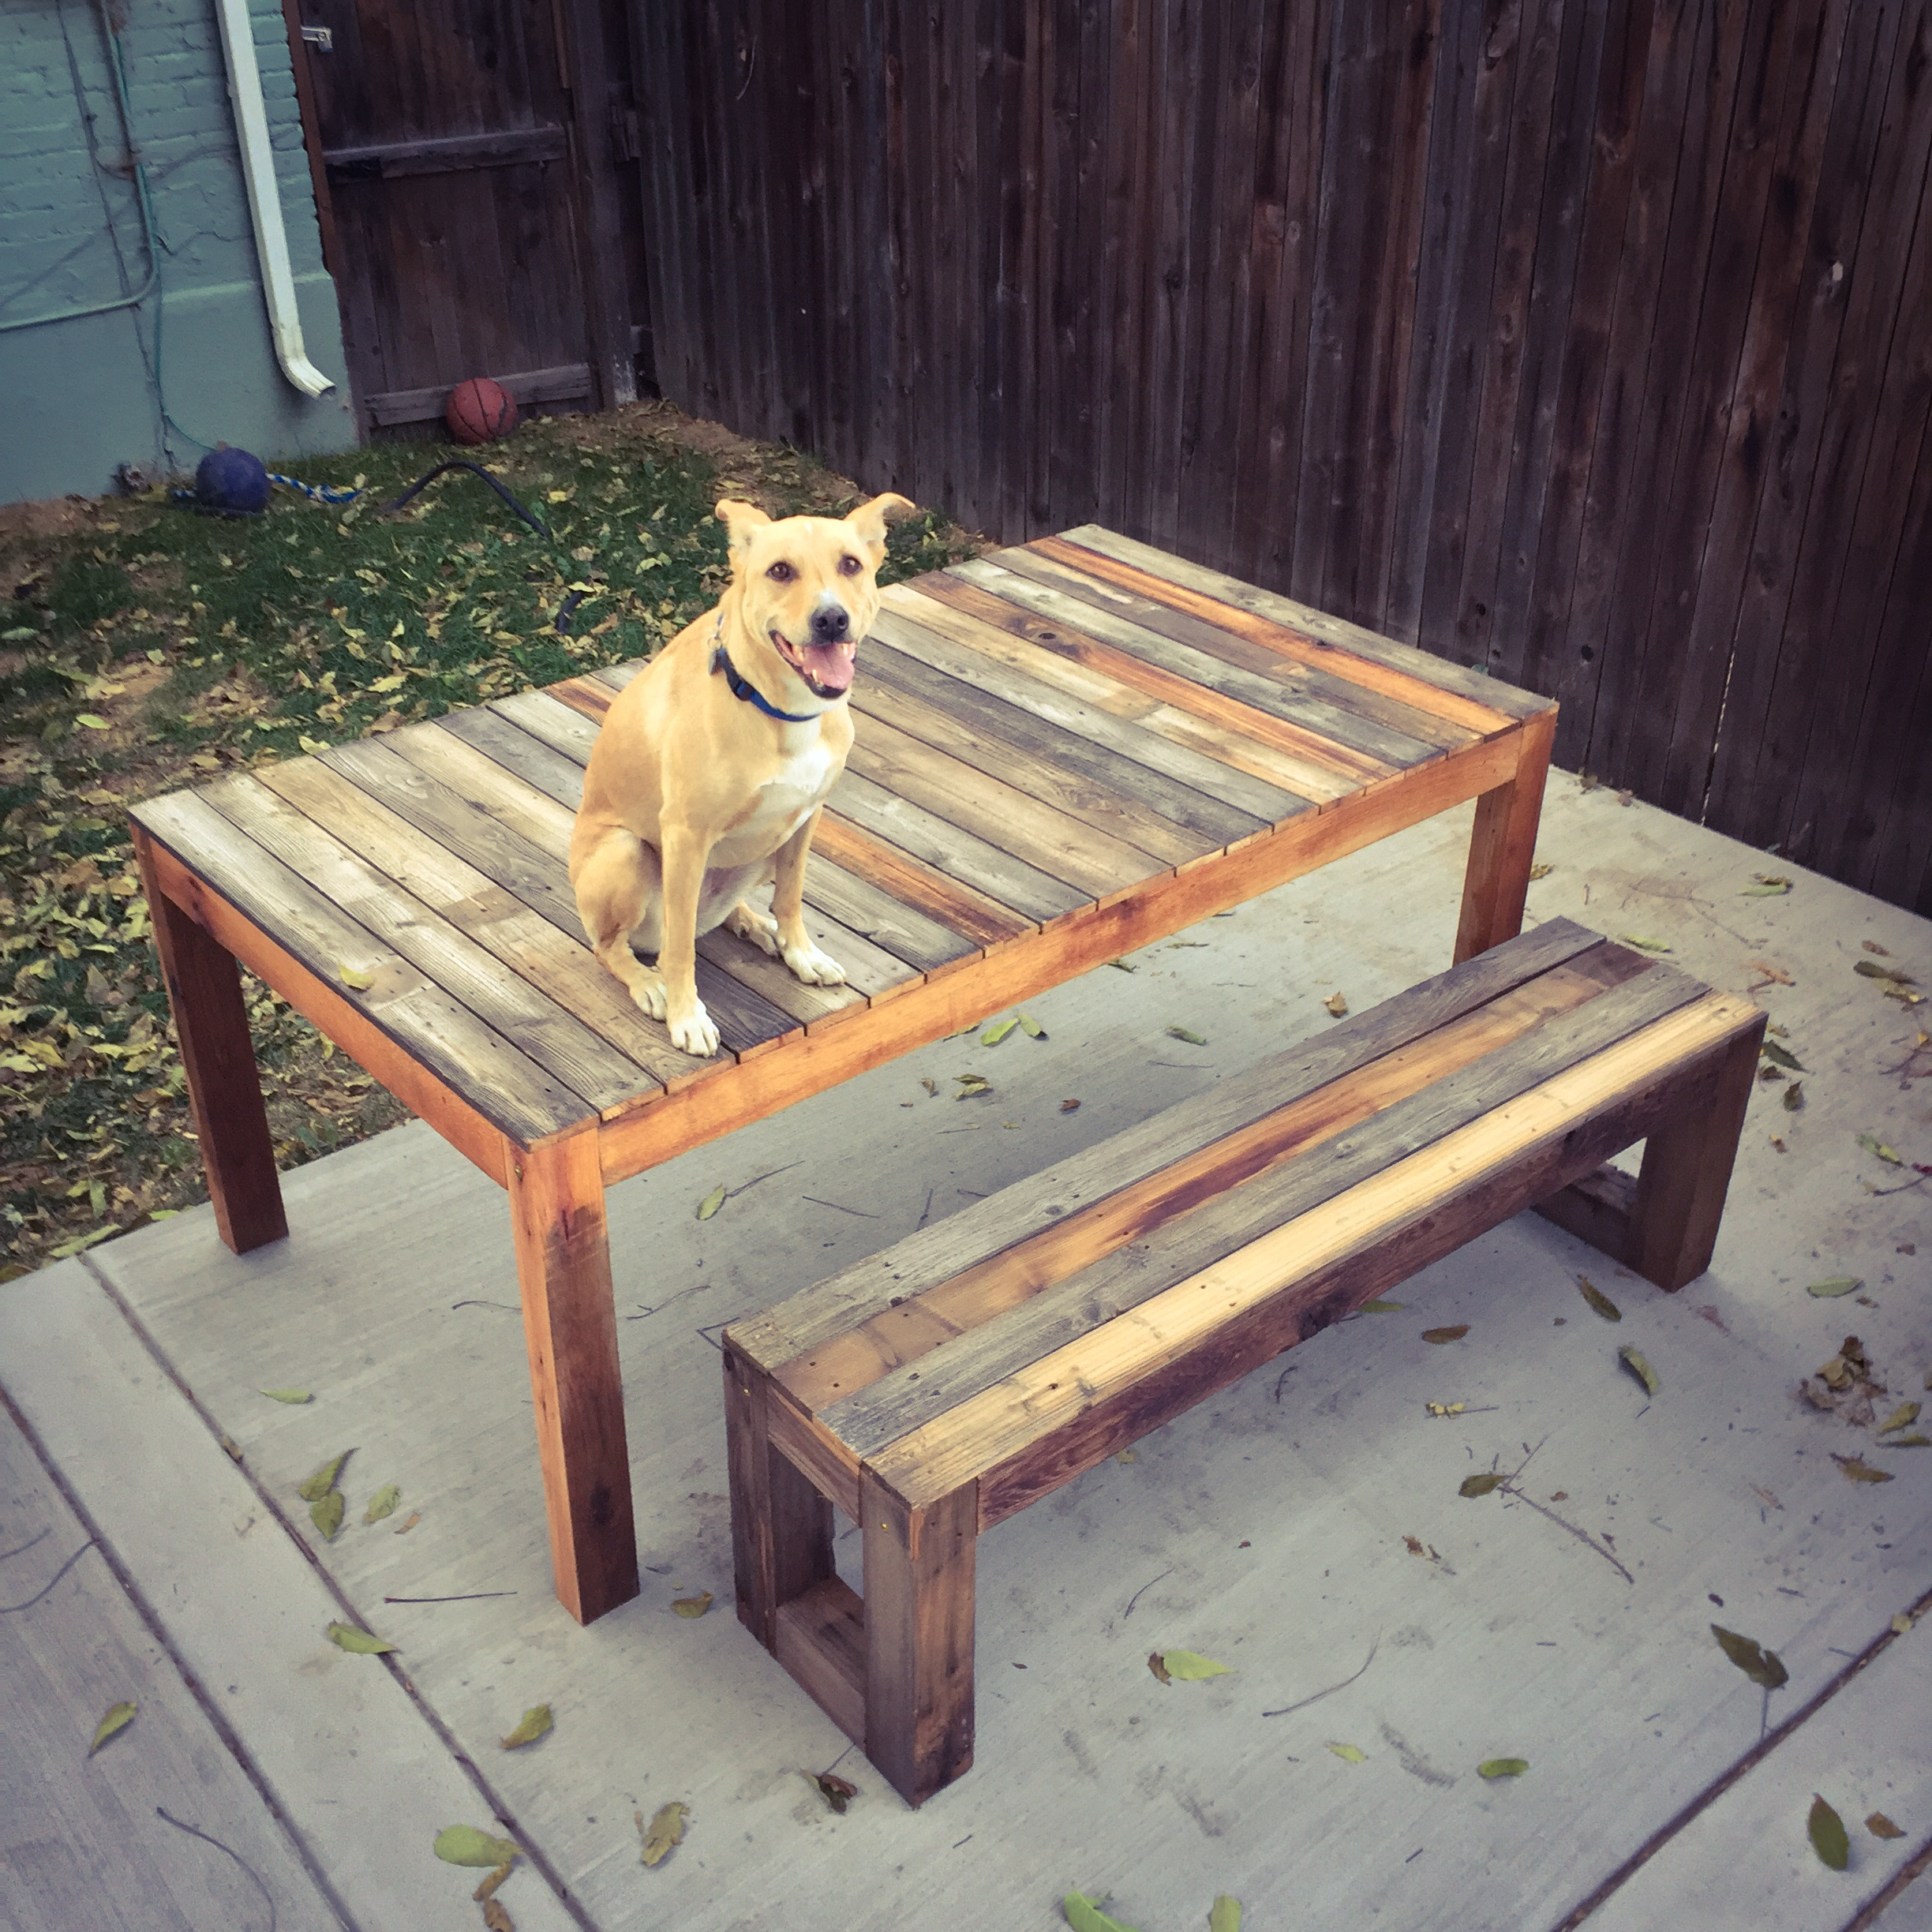 Reclaimed outdoor table, bench and shop dog.